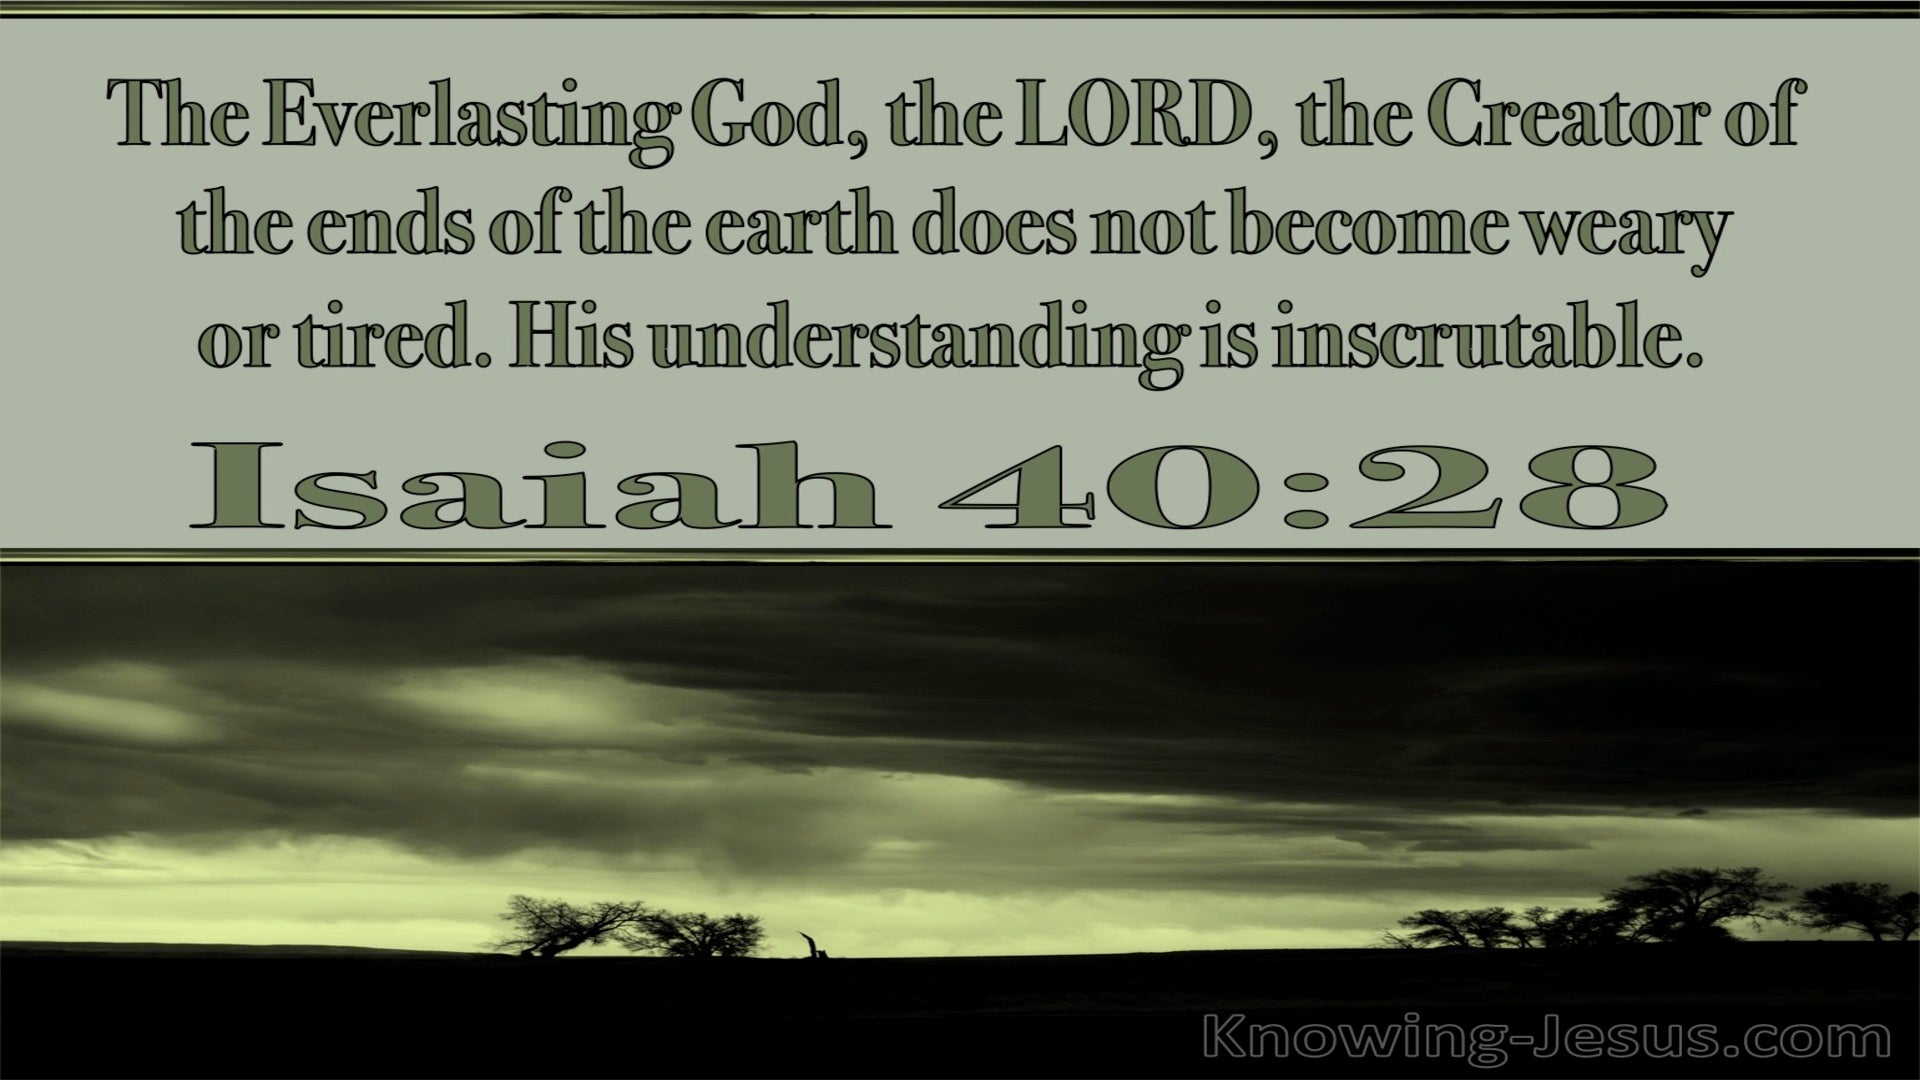 Isaiah 40:28 The Everlasting God Does Not Become Weary (green)